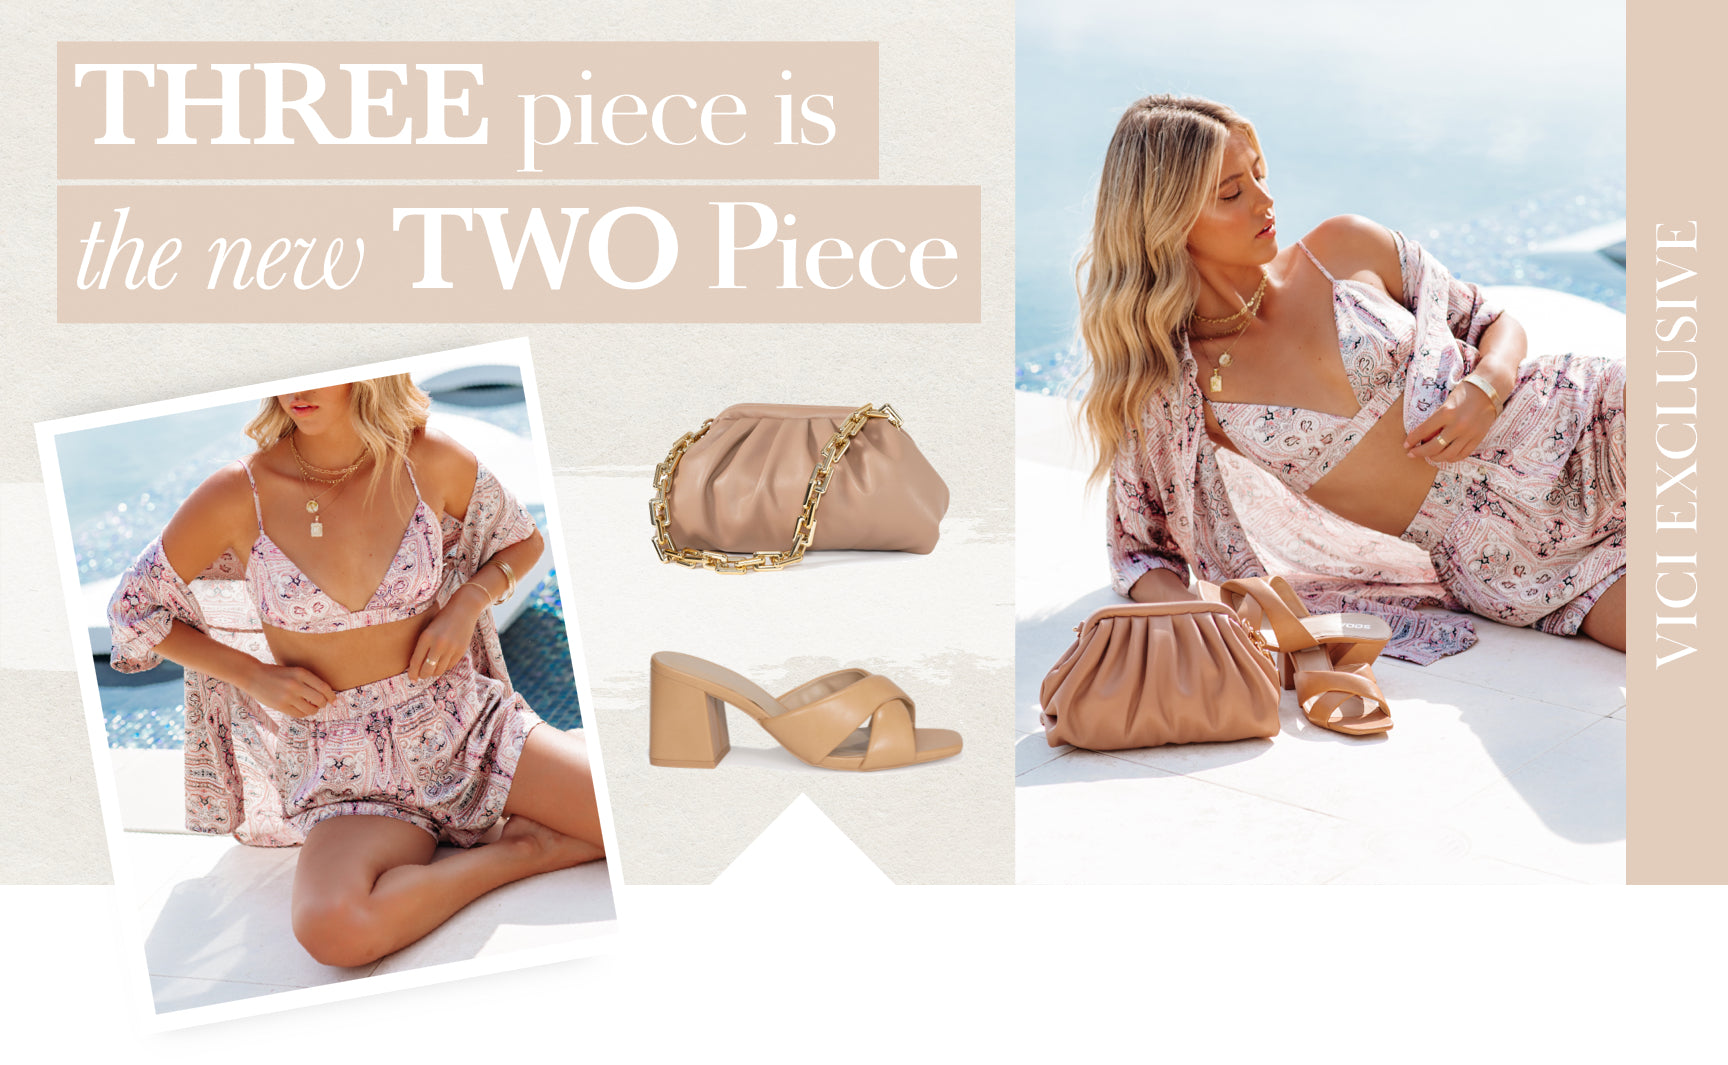 Say hello to the two piece set's older and cuter sister, the three piece set! This combo of silky, complimenting items literally has five outfits in one. Pair the shorts with a bikini, the bralette with denim cutoffs, the button up over a one piece, and SO much more. Shop Chic Matching Sets